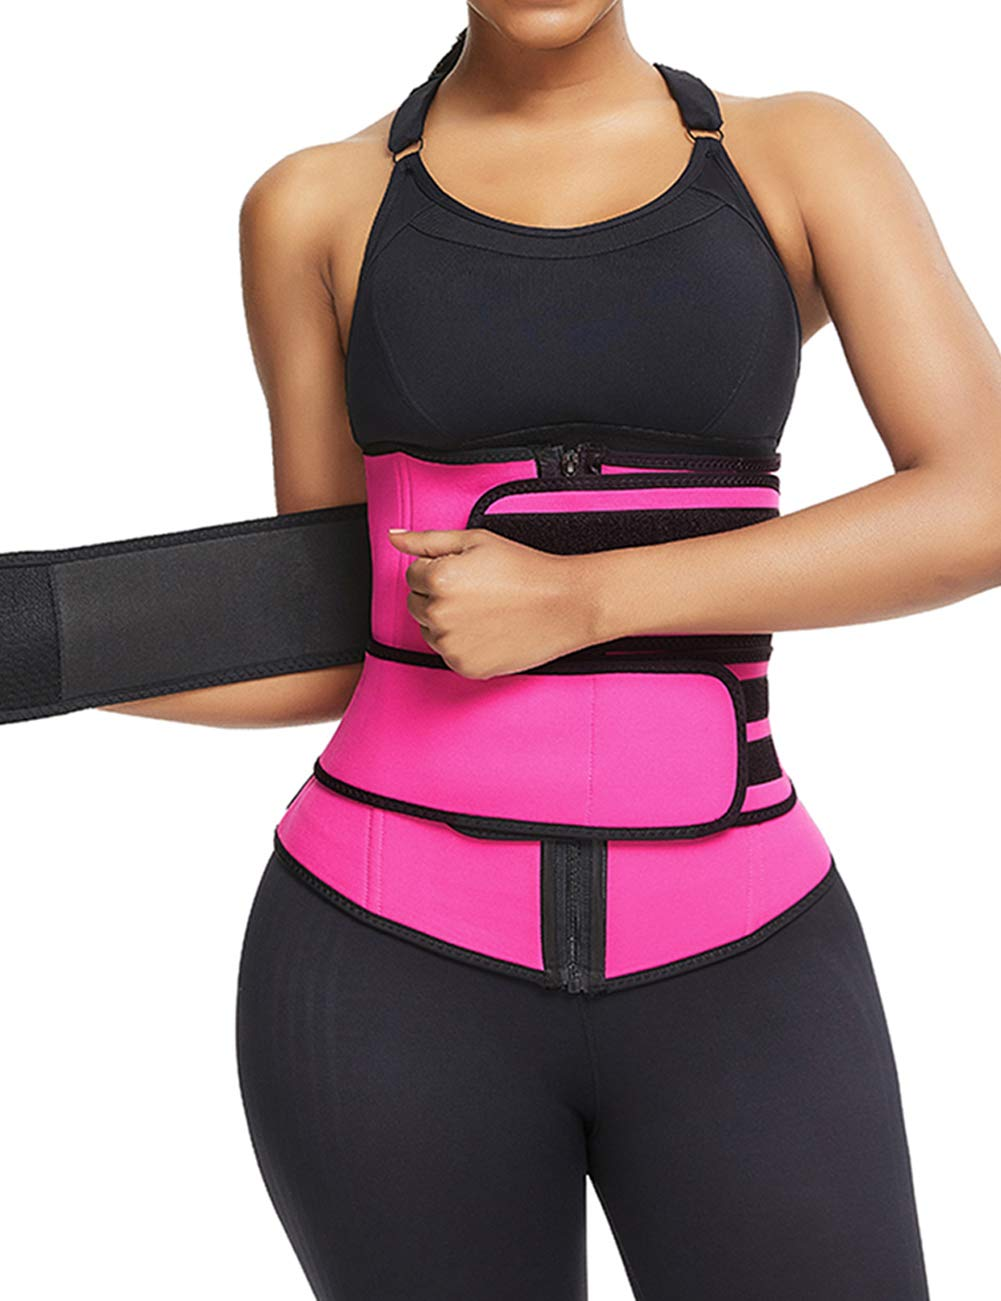 HUHHRRY Women Hot Sweat Neoprene Waist Trainer Corset for Weight Loss with Double Trimmer Belt XS-6XL